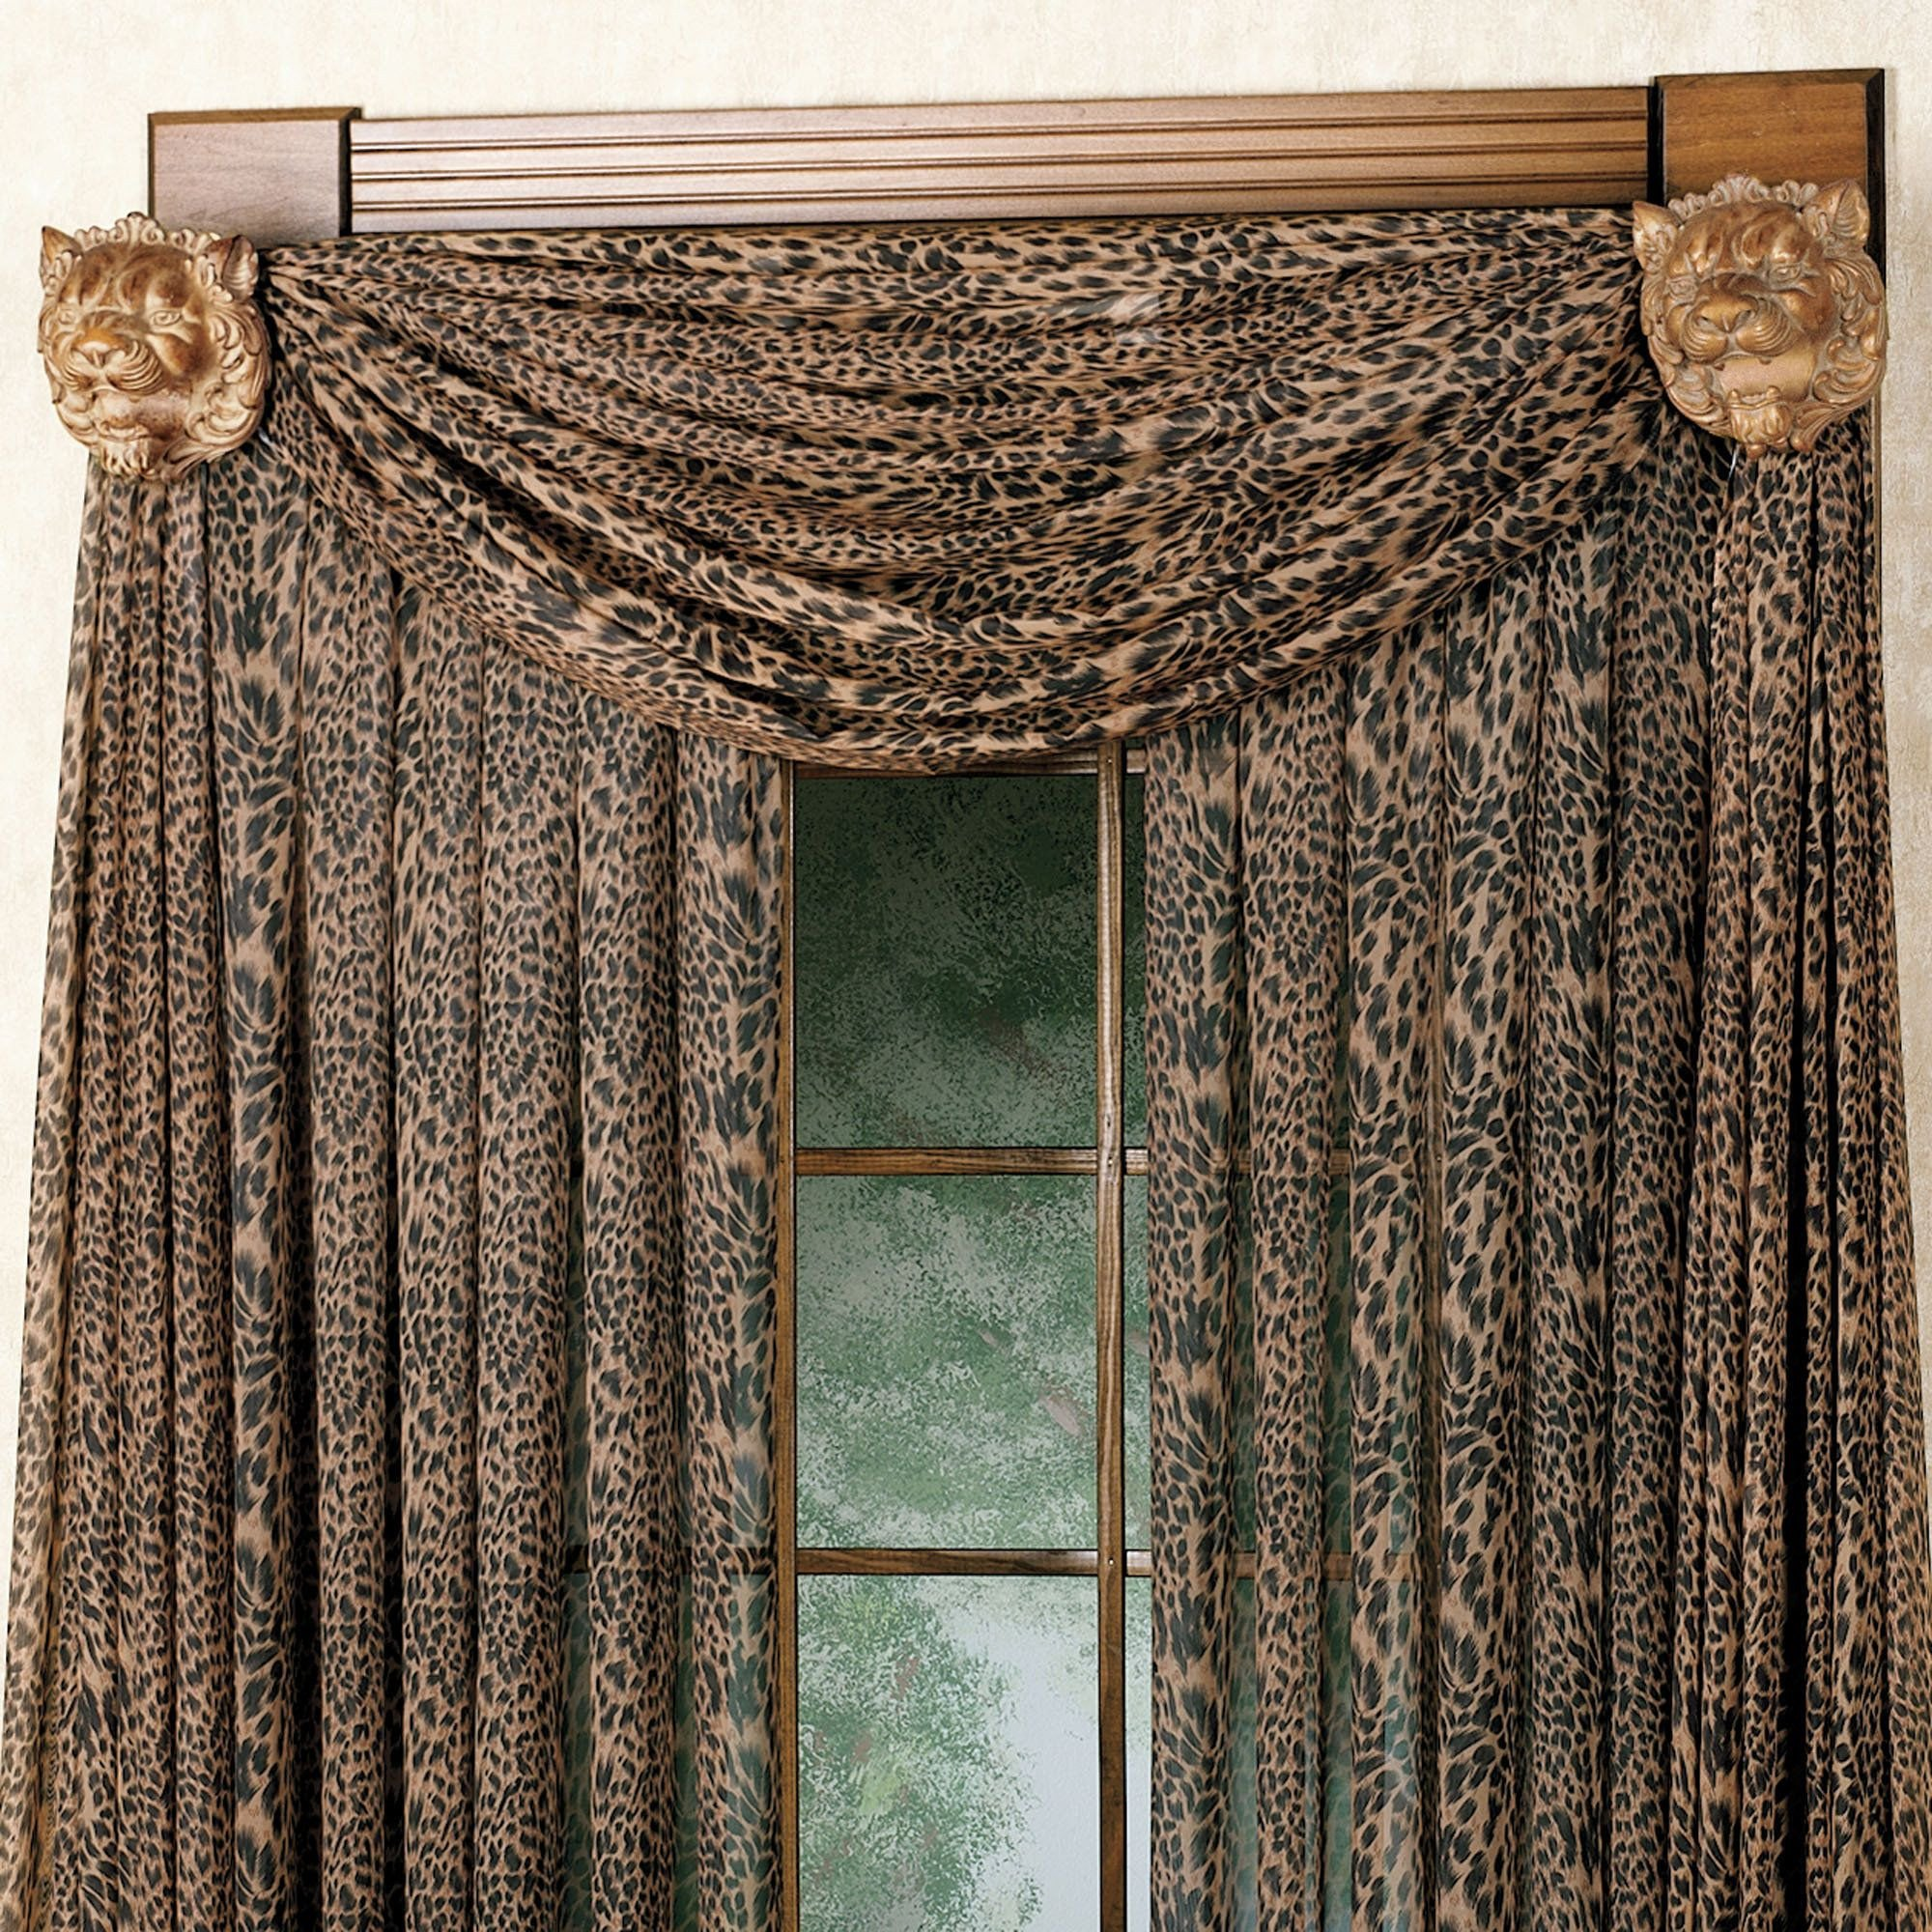 Pretty Curtains for Bedroom Lovely Leopard Curtains and Valance Want them for My Living Room